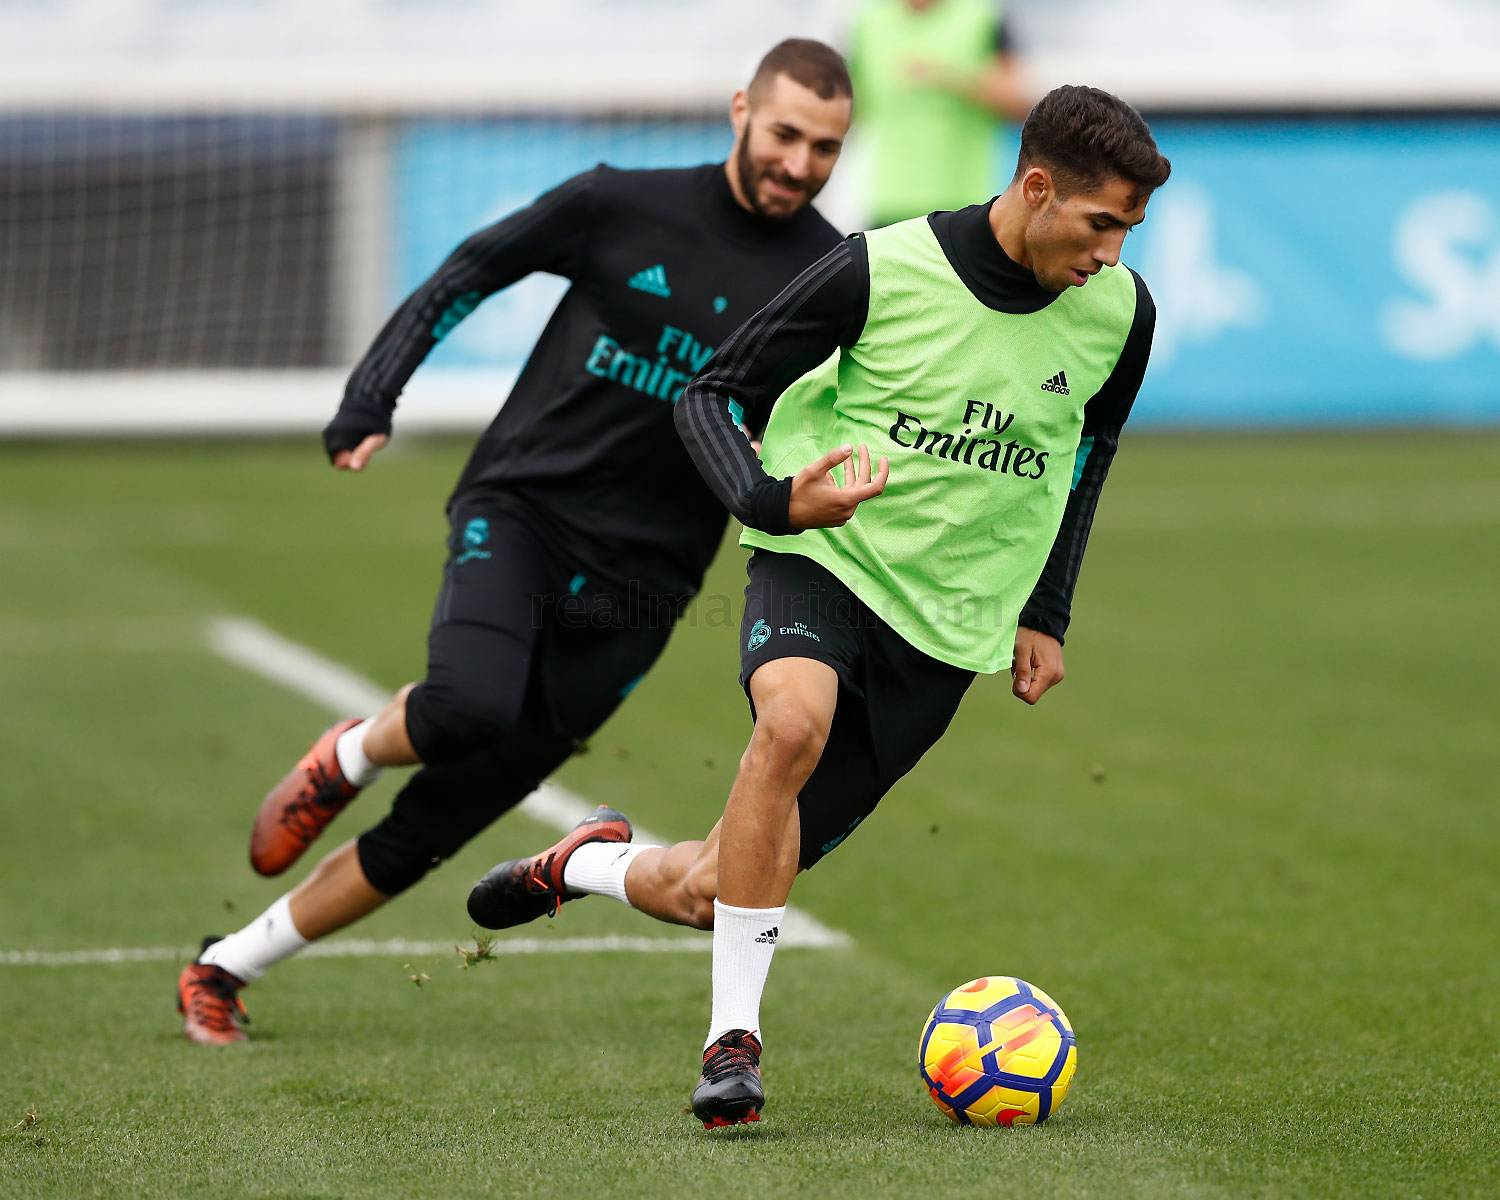 Real Madrid - Entrenamiento del Real Madrid - 04-11-2017